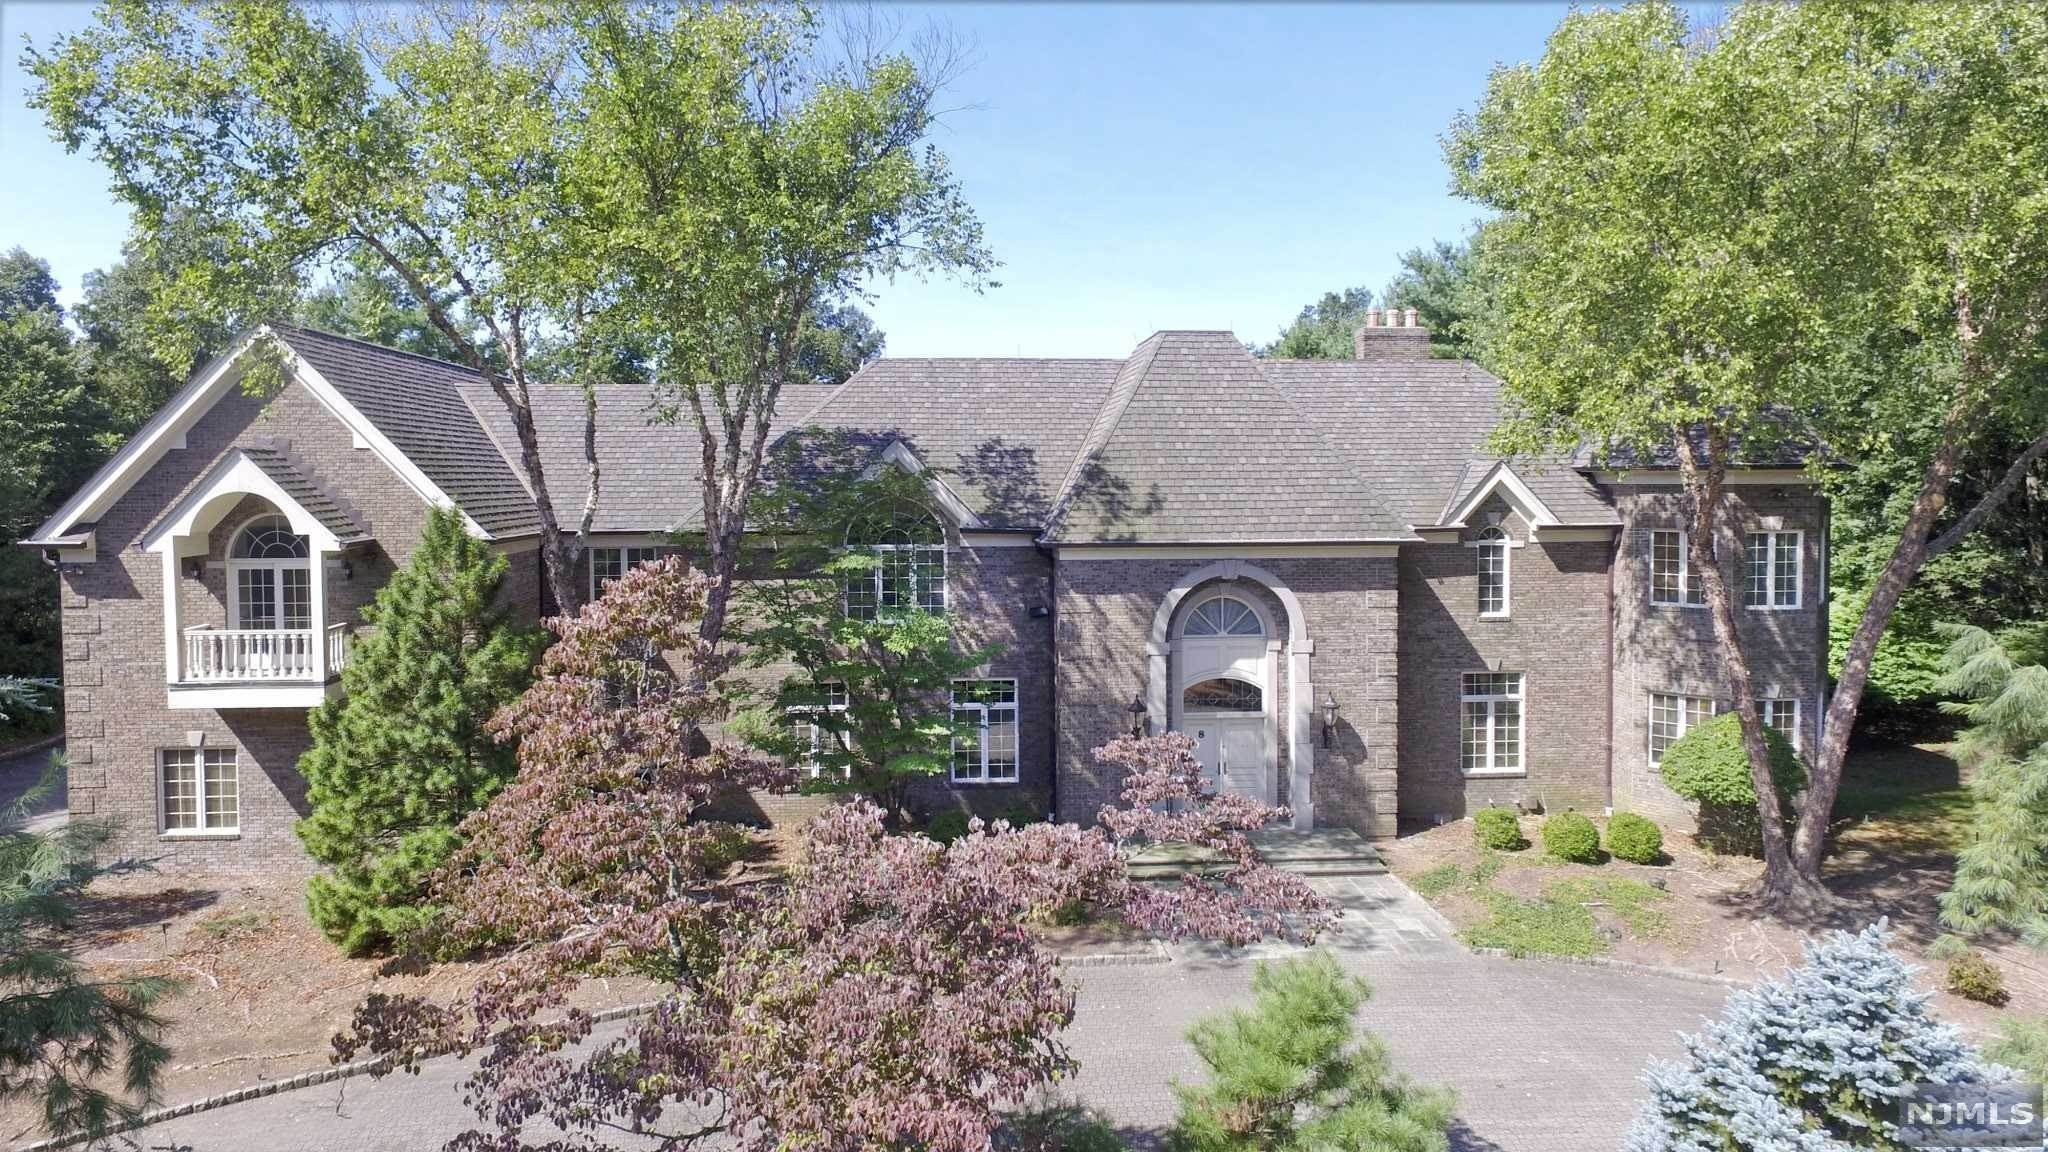 5. Single Family Home for Sale at 8 Shinnecock Trail Franklin Lakes, New Jersey, 07417 United States